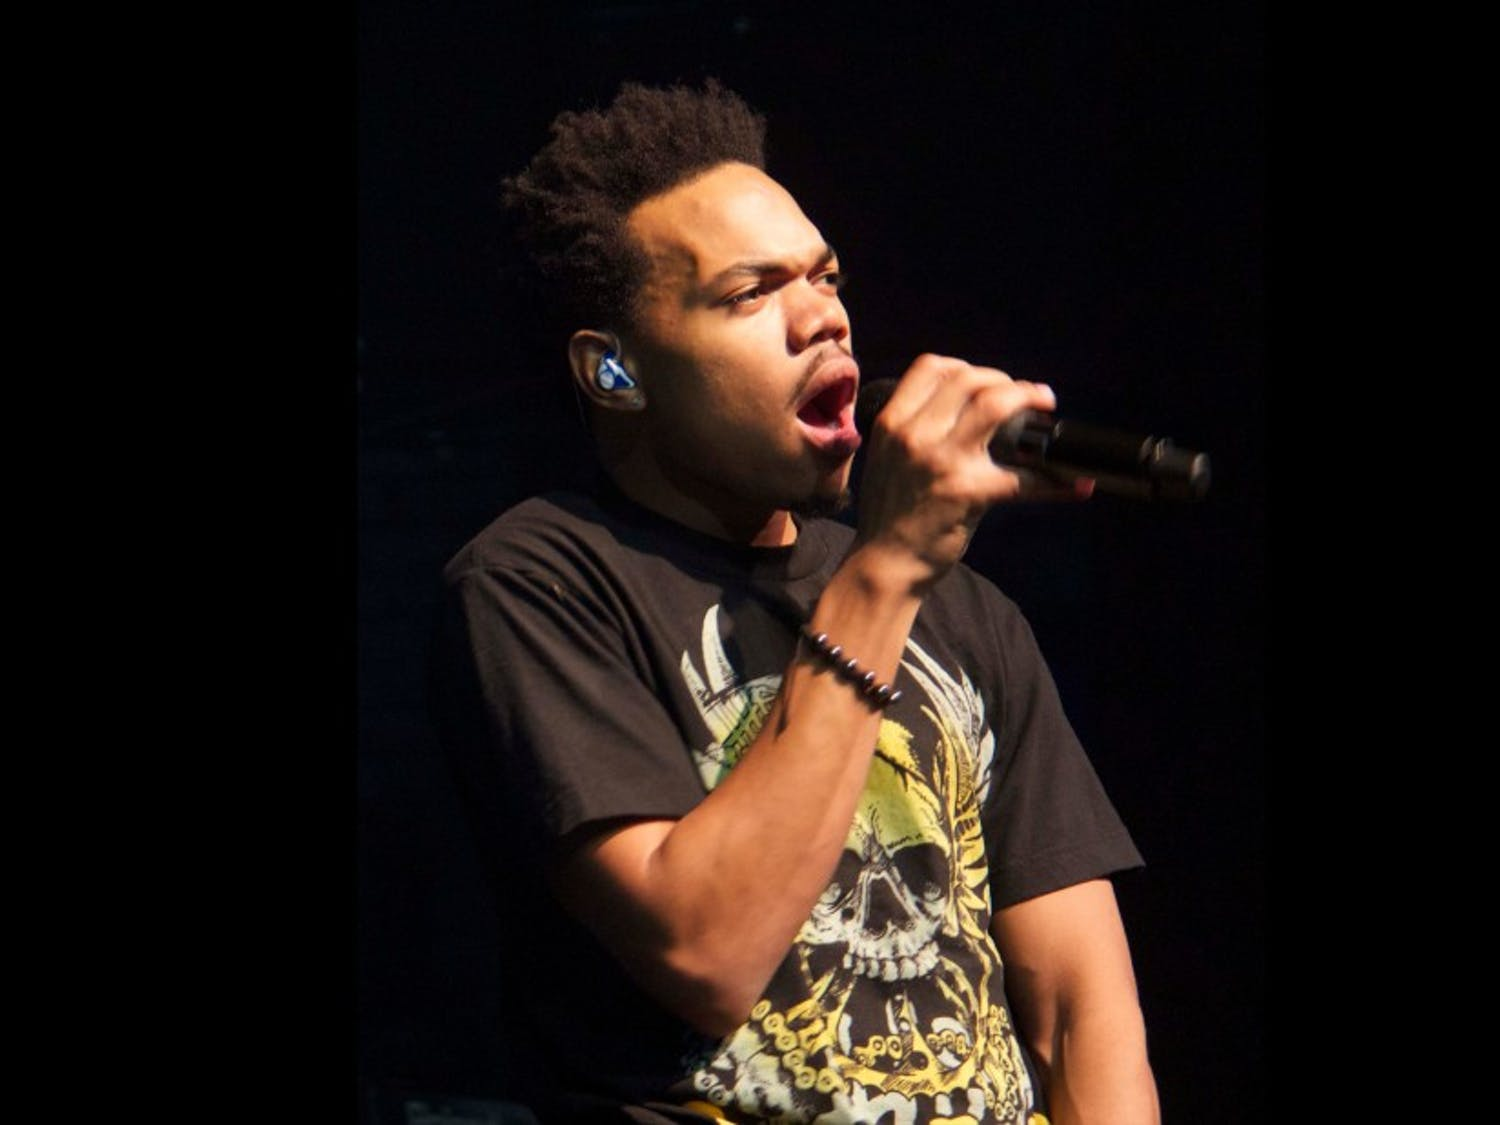 Chance the Rapper performed in Raleigh, N.C. as a part of his latest Magnificent Coloring Tour.